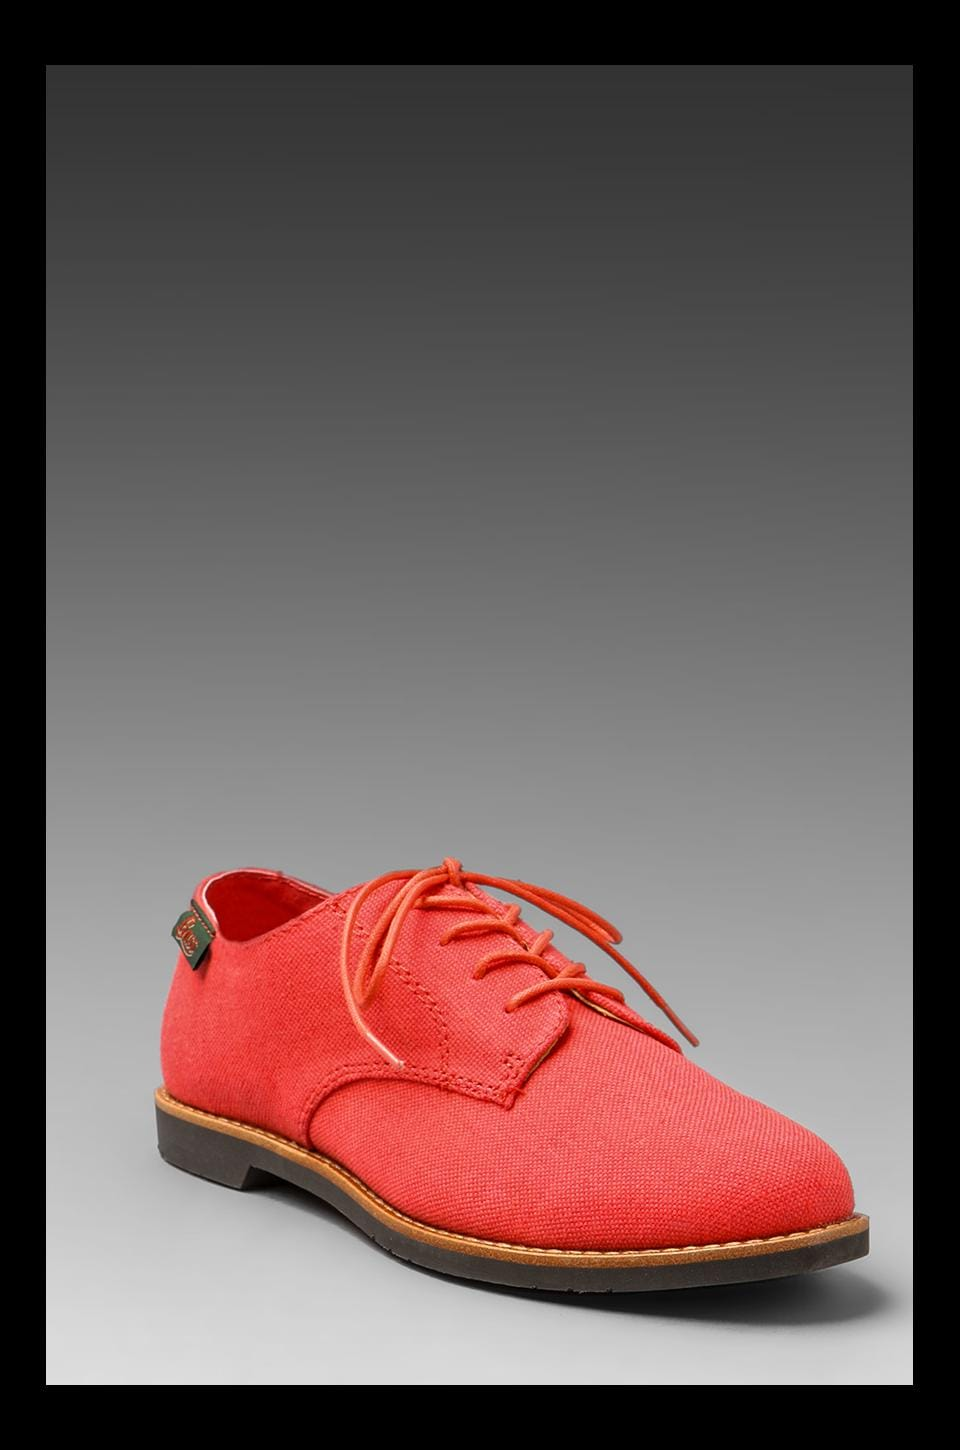 Bass Ely Oxford Shoe in Hot Coral